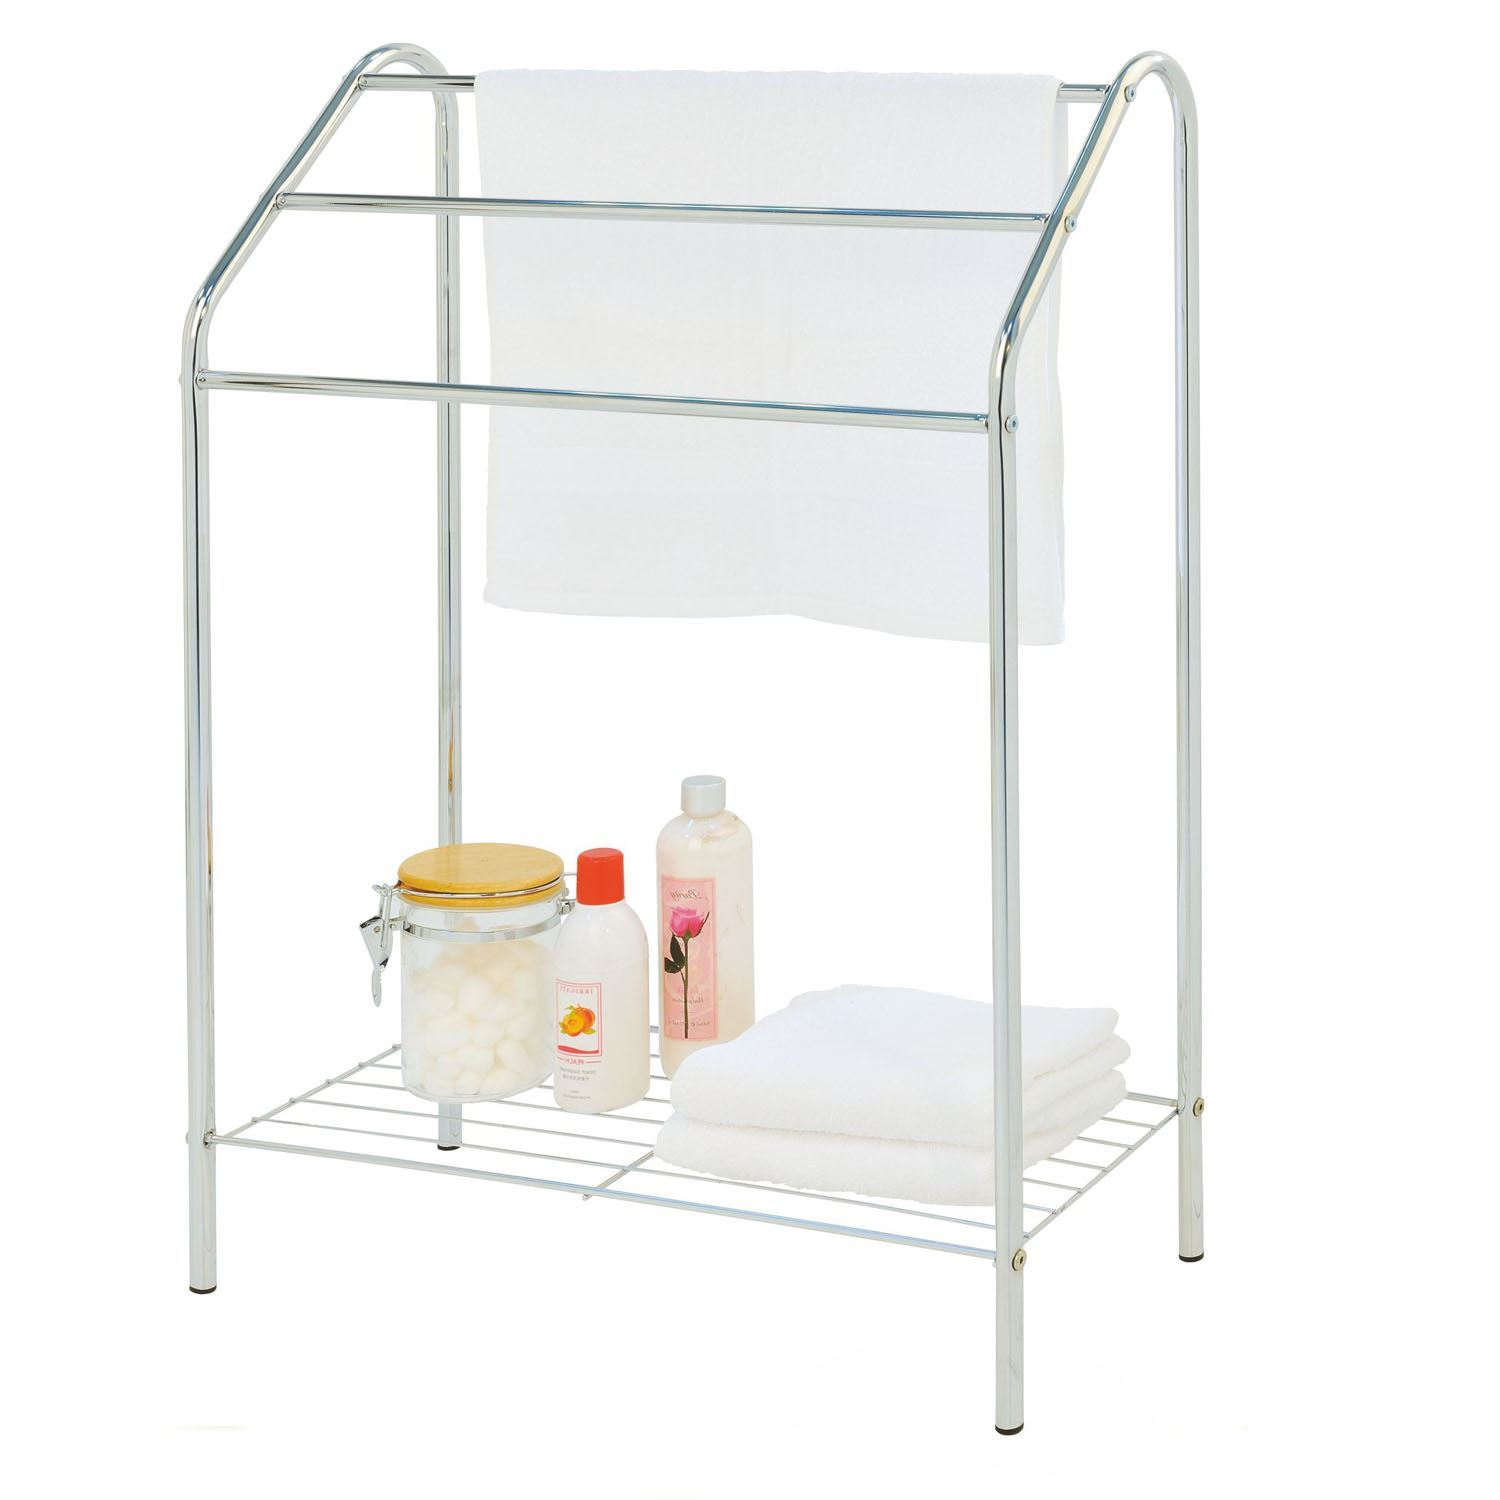 3 Tier Towel Rail Chrome Drying Bathroom Floor Stand Shelf Rack Free Standing Ebay